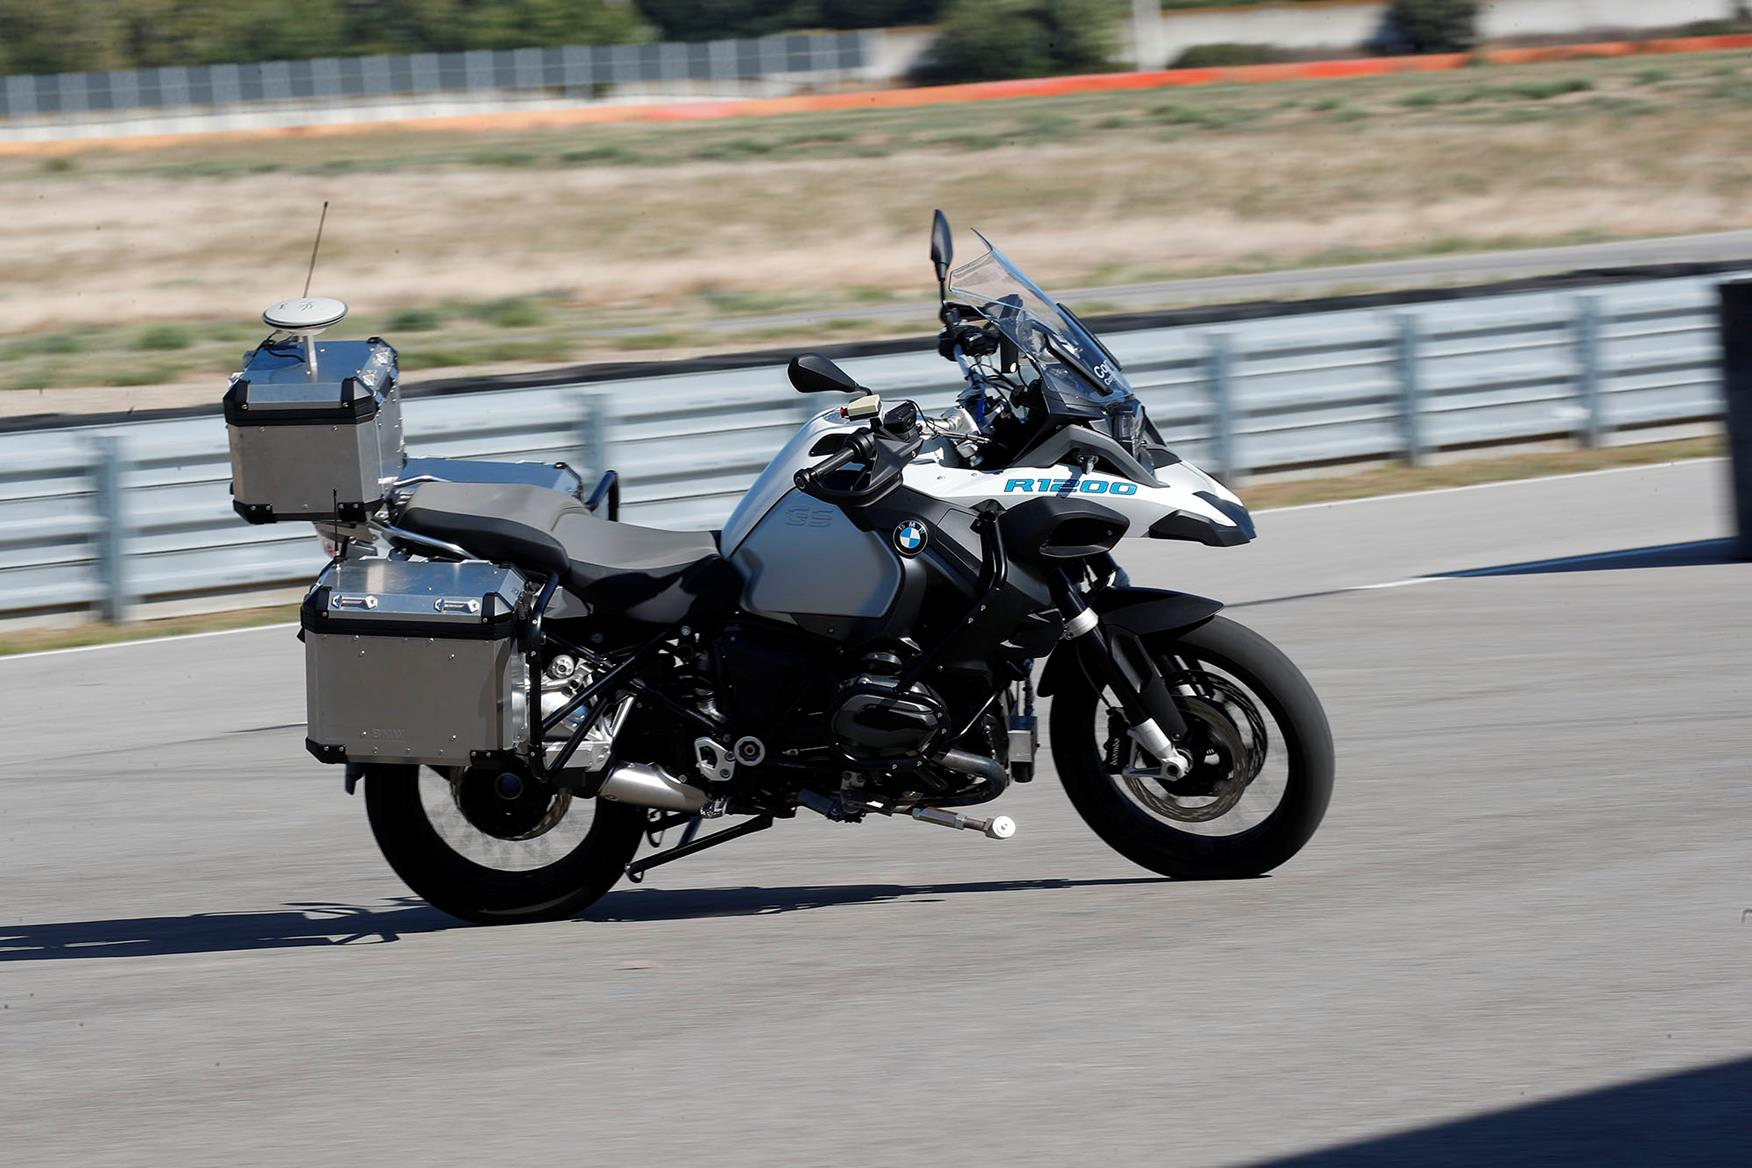 The bike is a step in the journey towards safer motorbikes